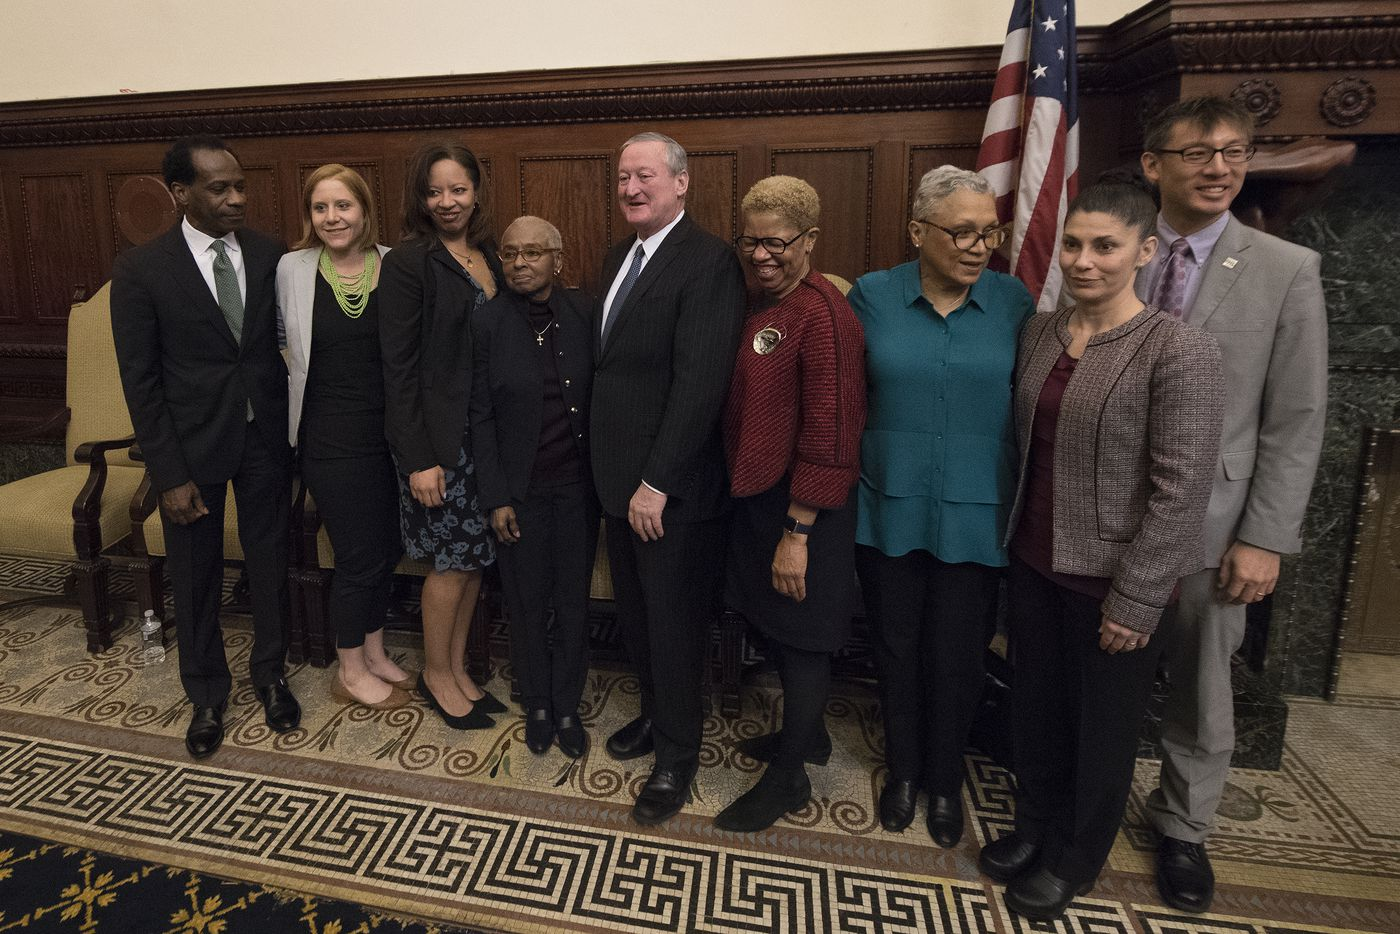 The new Philly school board convenes next month. What do people want members to know?